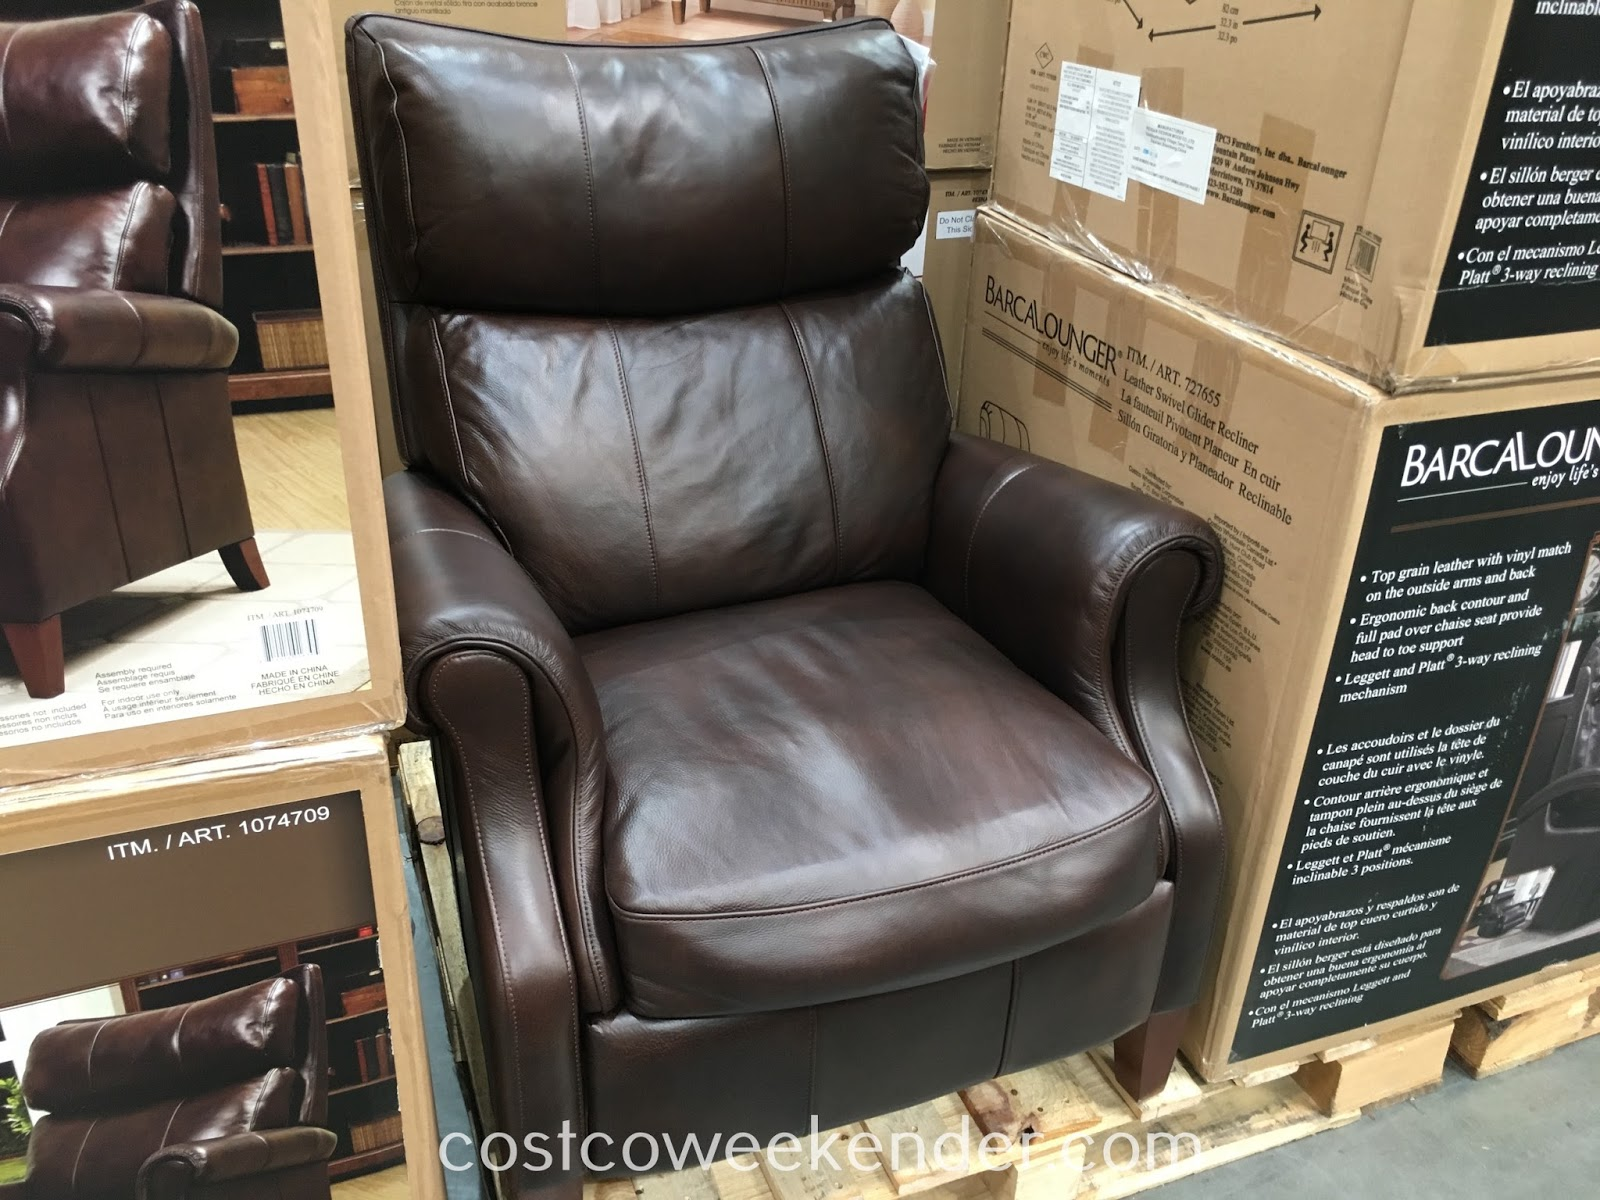 Synergy Recliner Chair Cover In Jaipur Home Leather Pushback Costco Weekender Relax At The Comfort Of